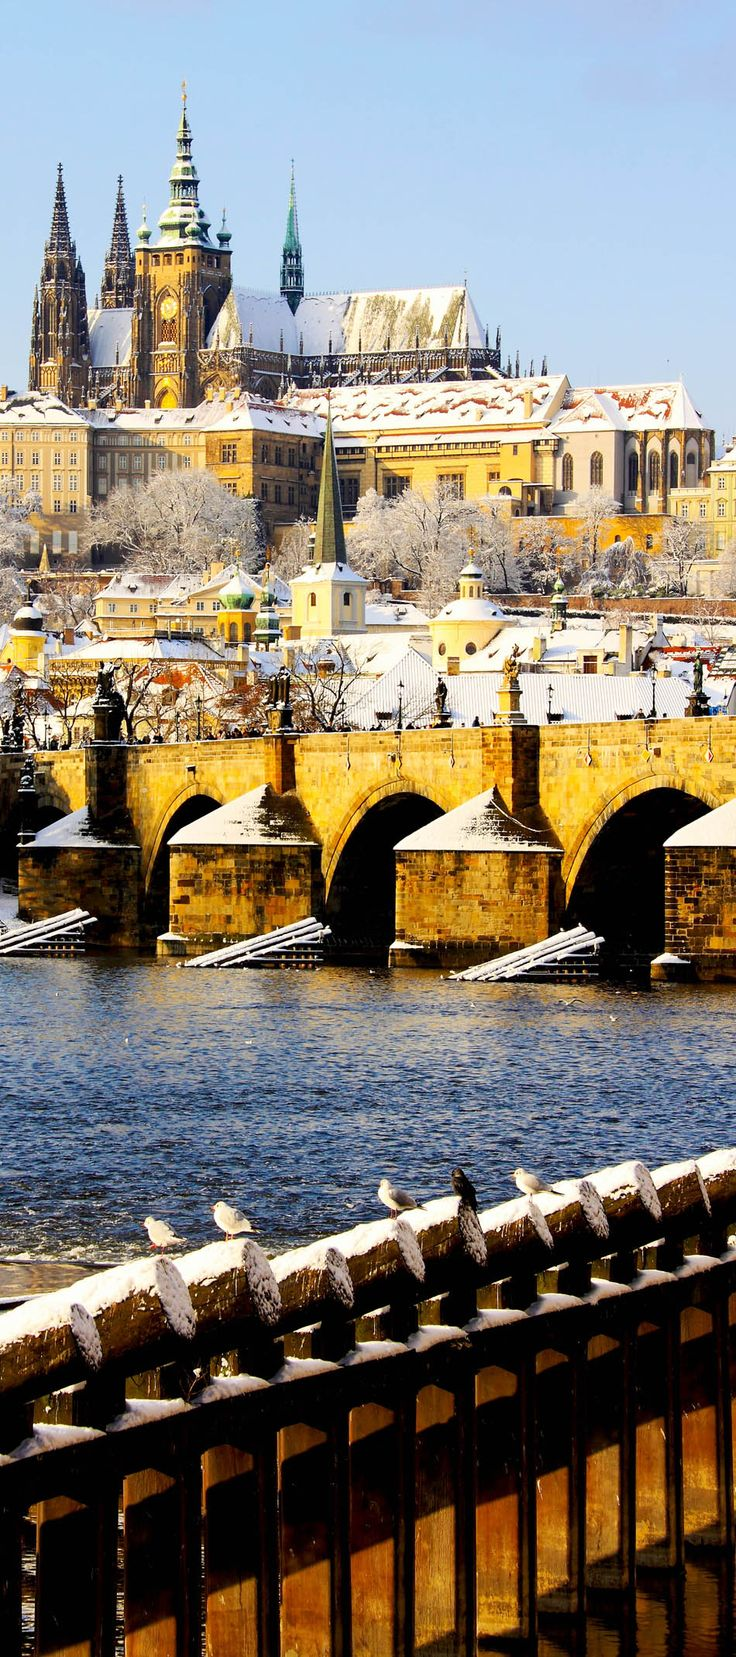 Romantic View of Gothic Castle with the Famous Charles Bridge in Prague, Czech Republic   22 Reasons why Czech Republic must be in the Top of your Bucket List°°